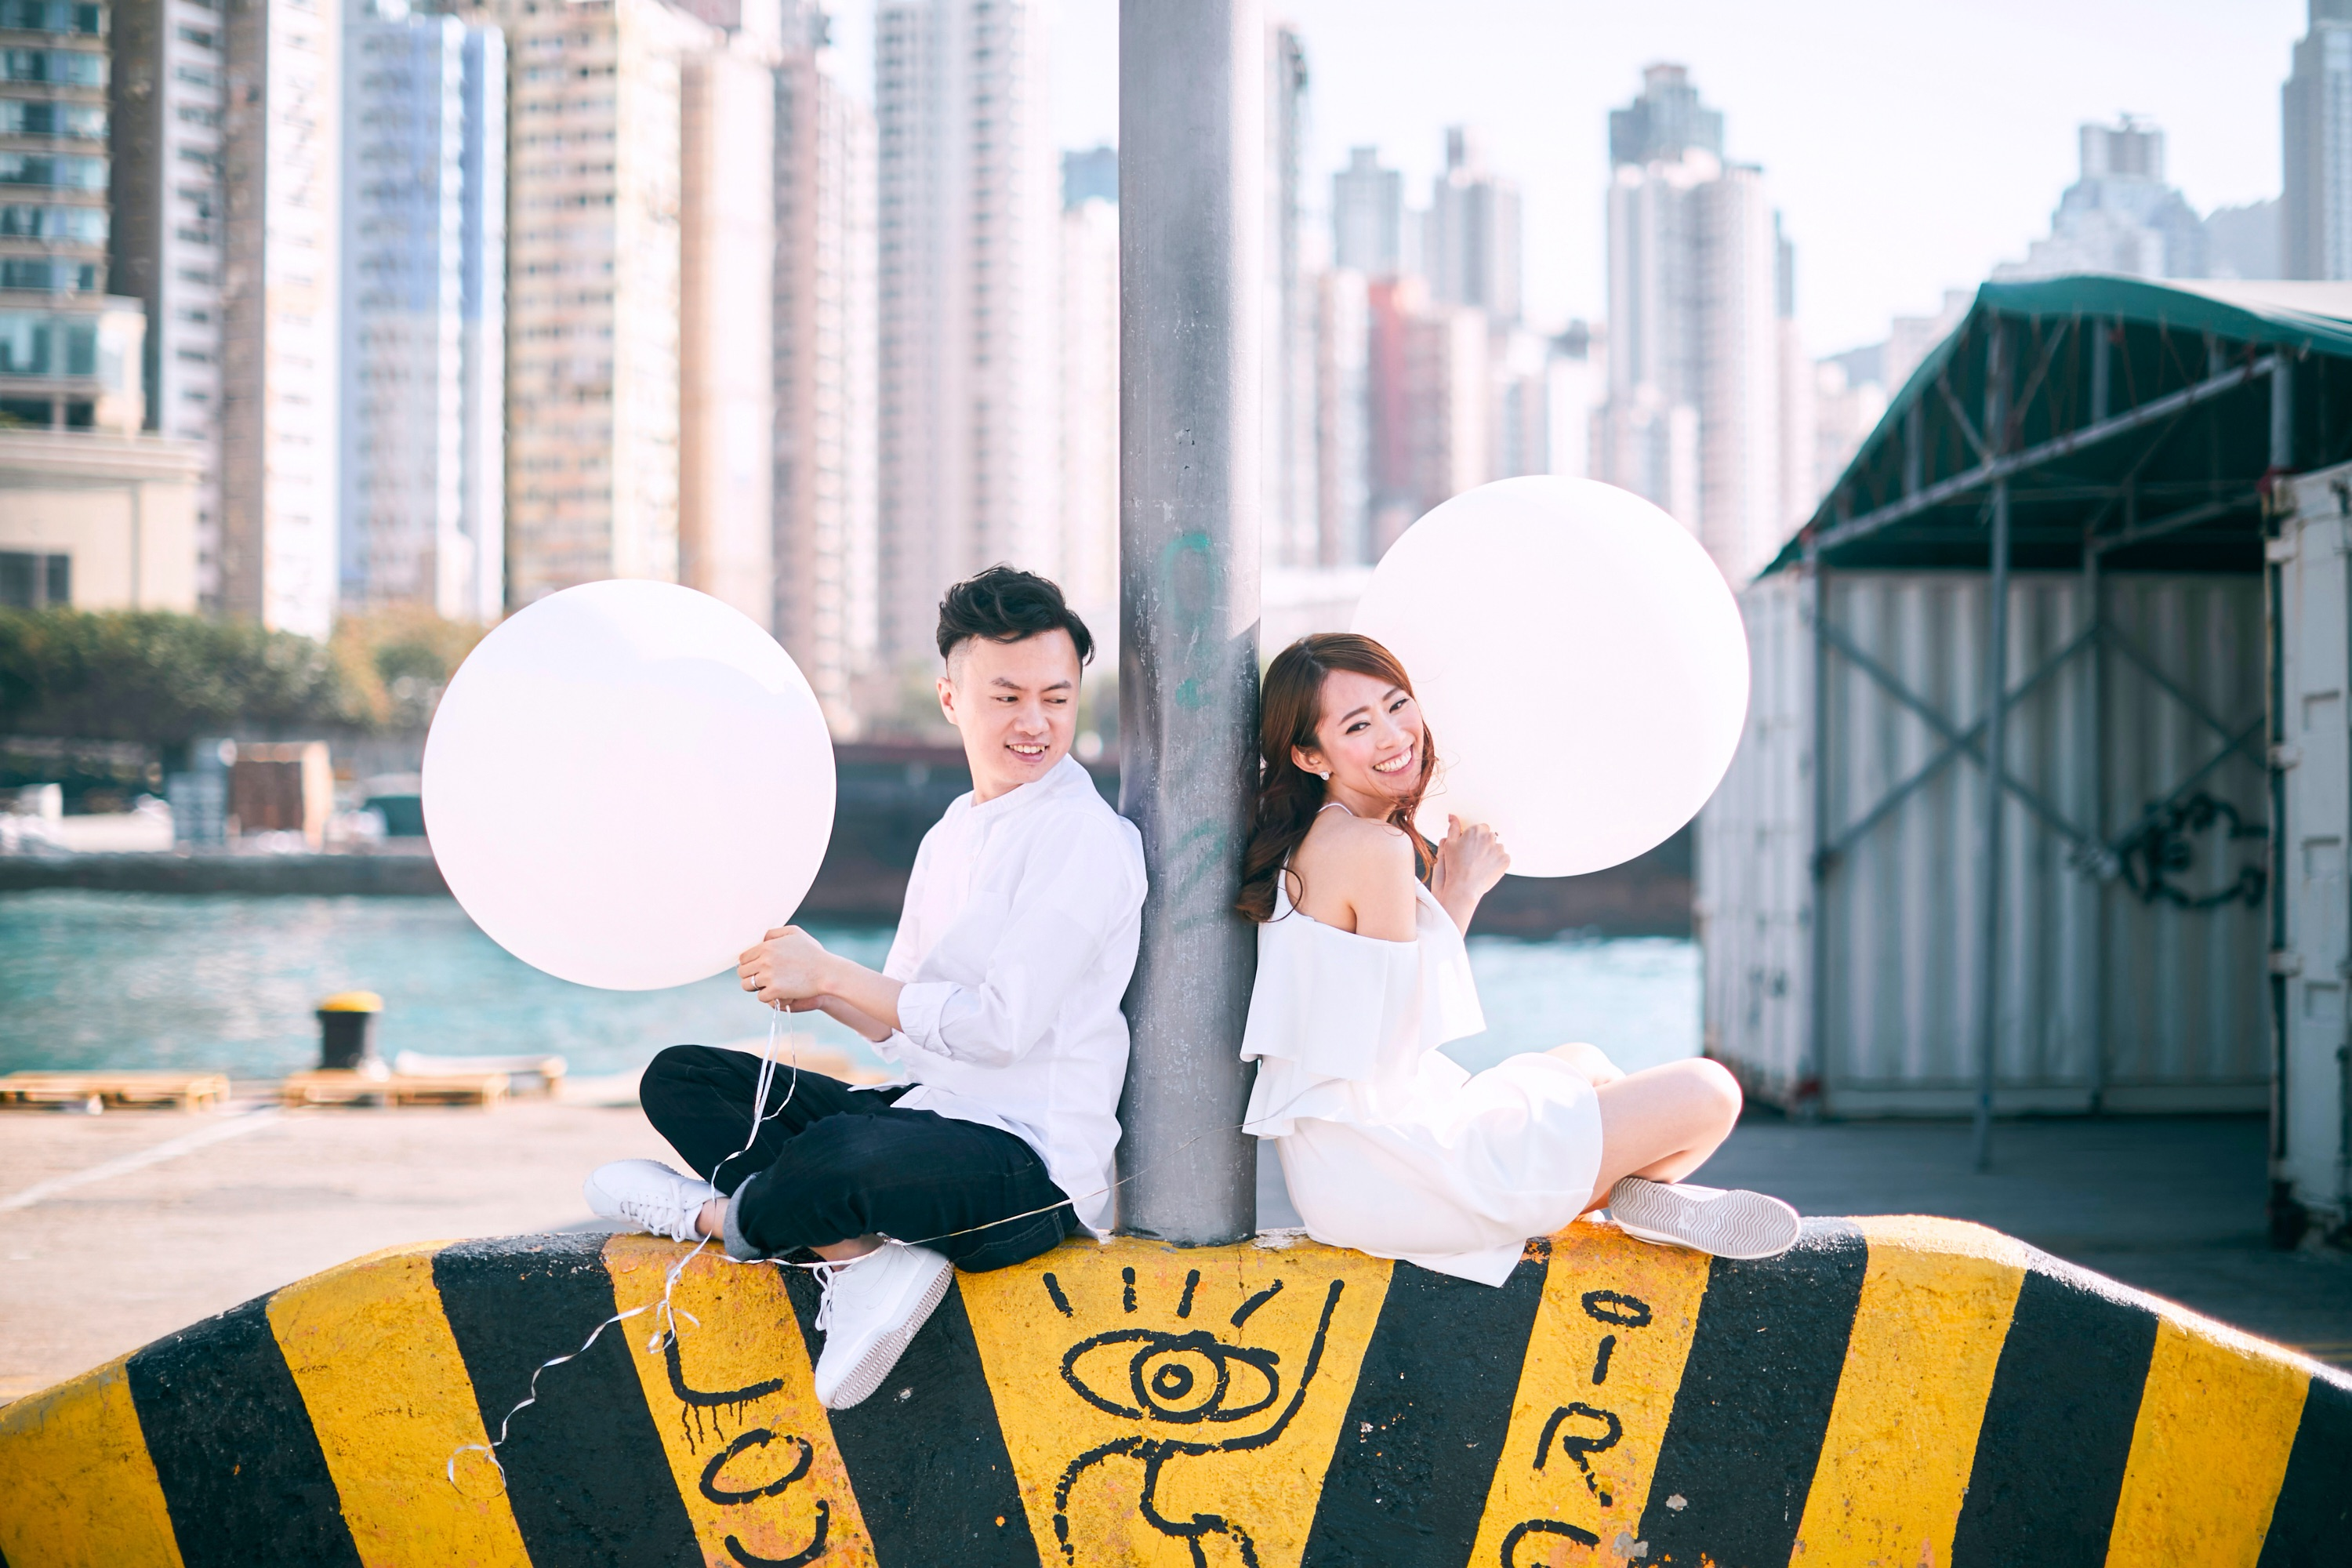 zOO Wedding Hong Kong Prewedding Photographer by Cheric 文青系 西環碼頭 婚紗 禮服 結婚